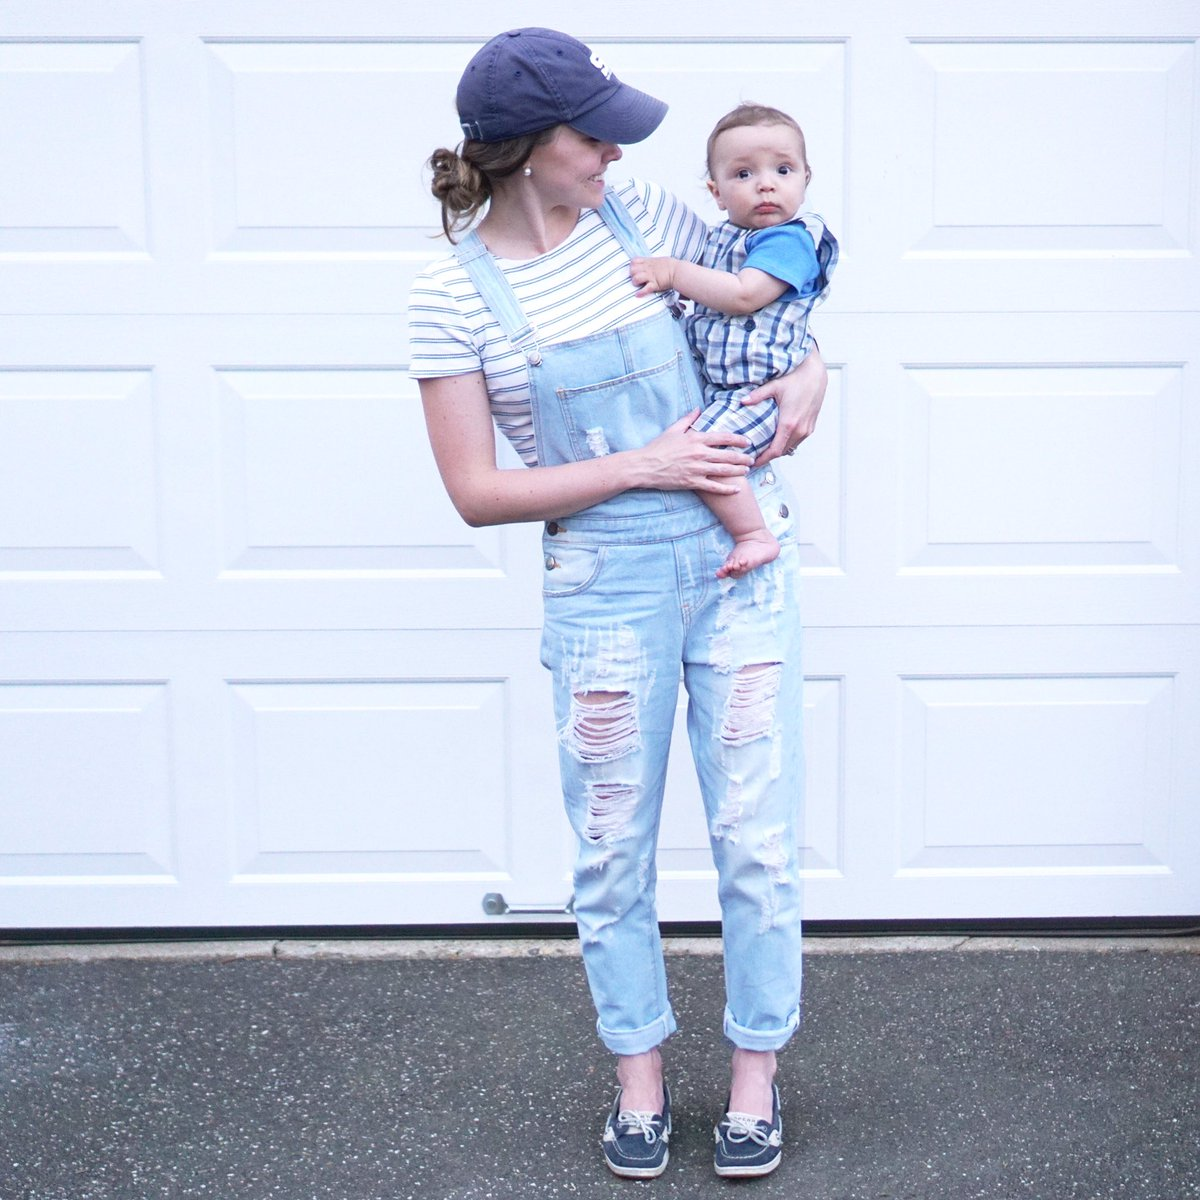 #ontheblog I am #partner ing with @ShopPinkBlush to bring you 3 ways to style overalls + a $50 shop credit #giveaway  http://www. ureadyteddy.com/single-post/Th ree-ways-to-style-overalls-for-a-casual-look &nbsp; … <br>http://pic.twitter.com/aMdPG01xl3